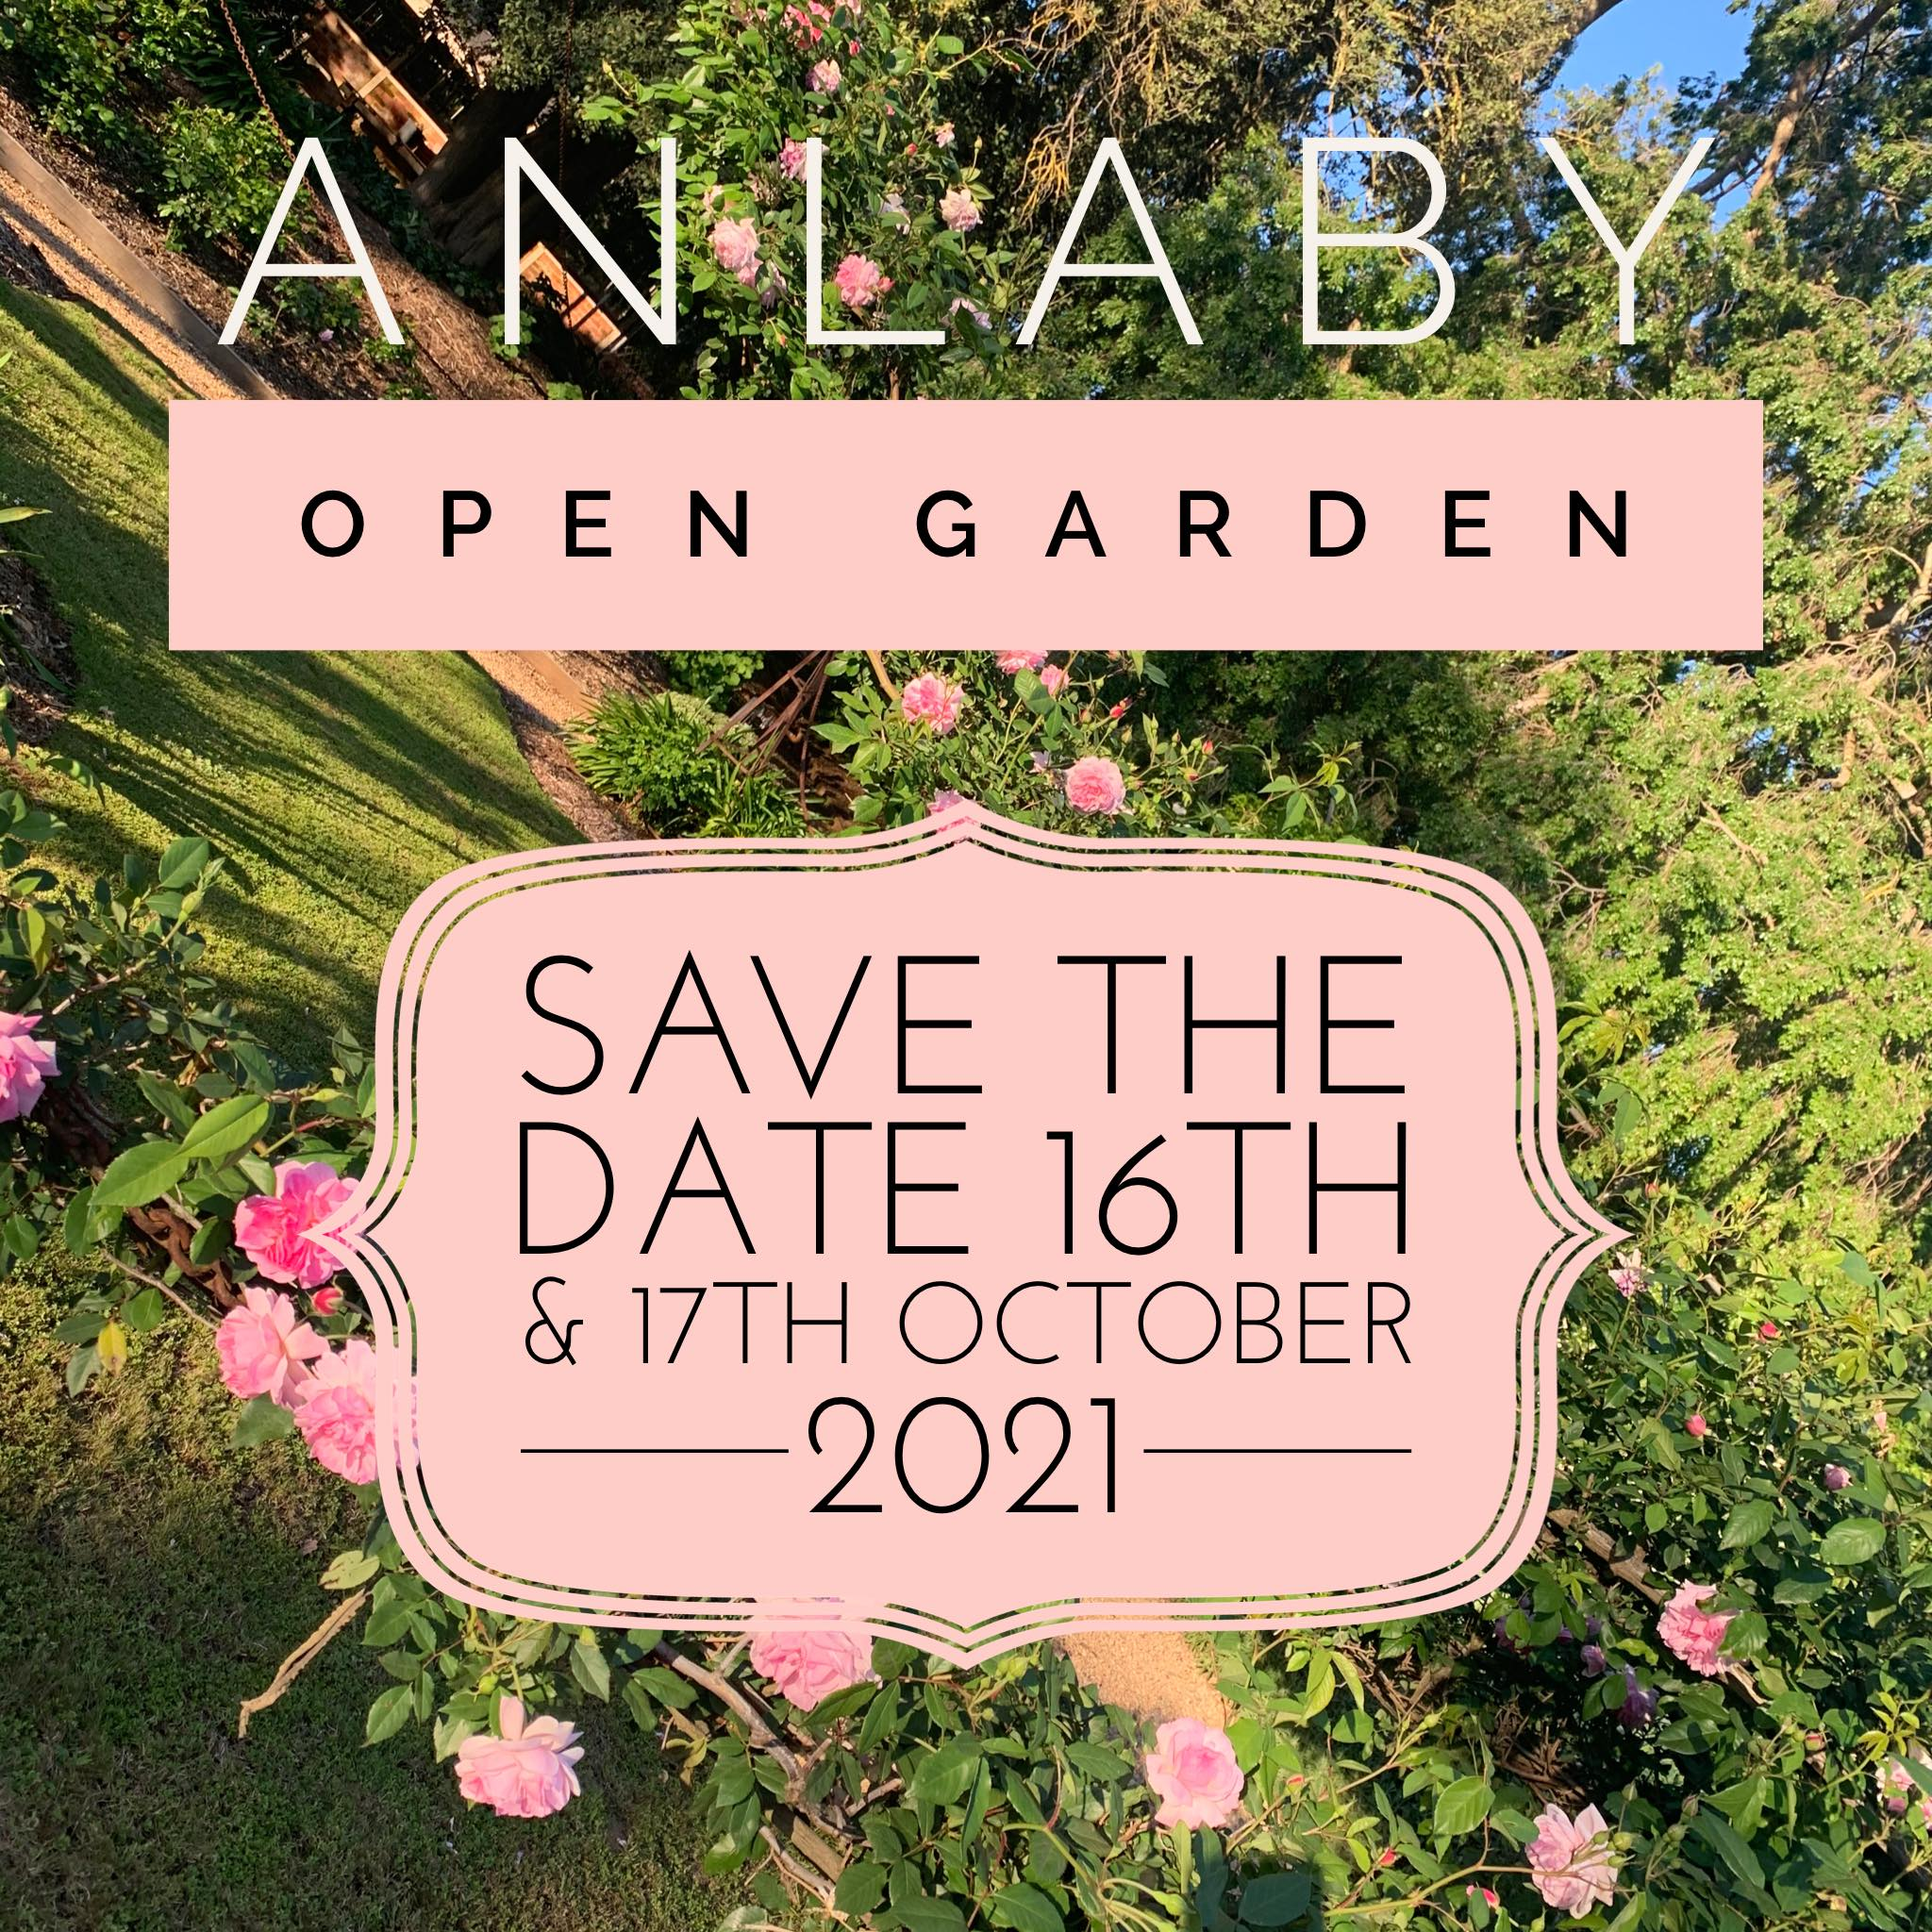 Anlaby - Save the Date for our Open Gardens 2021